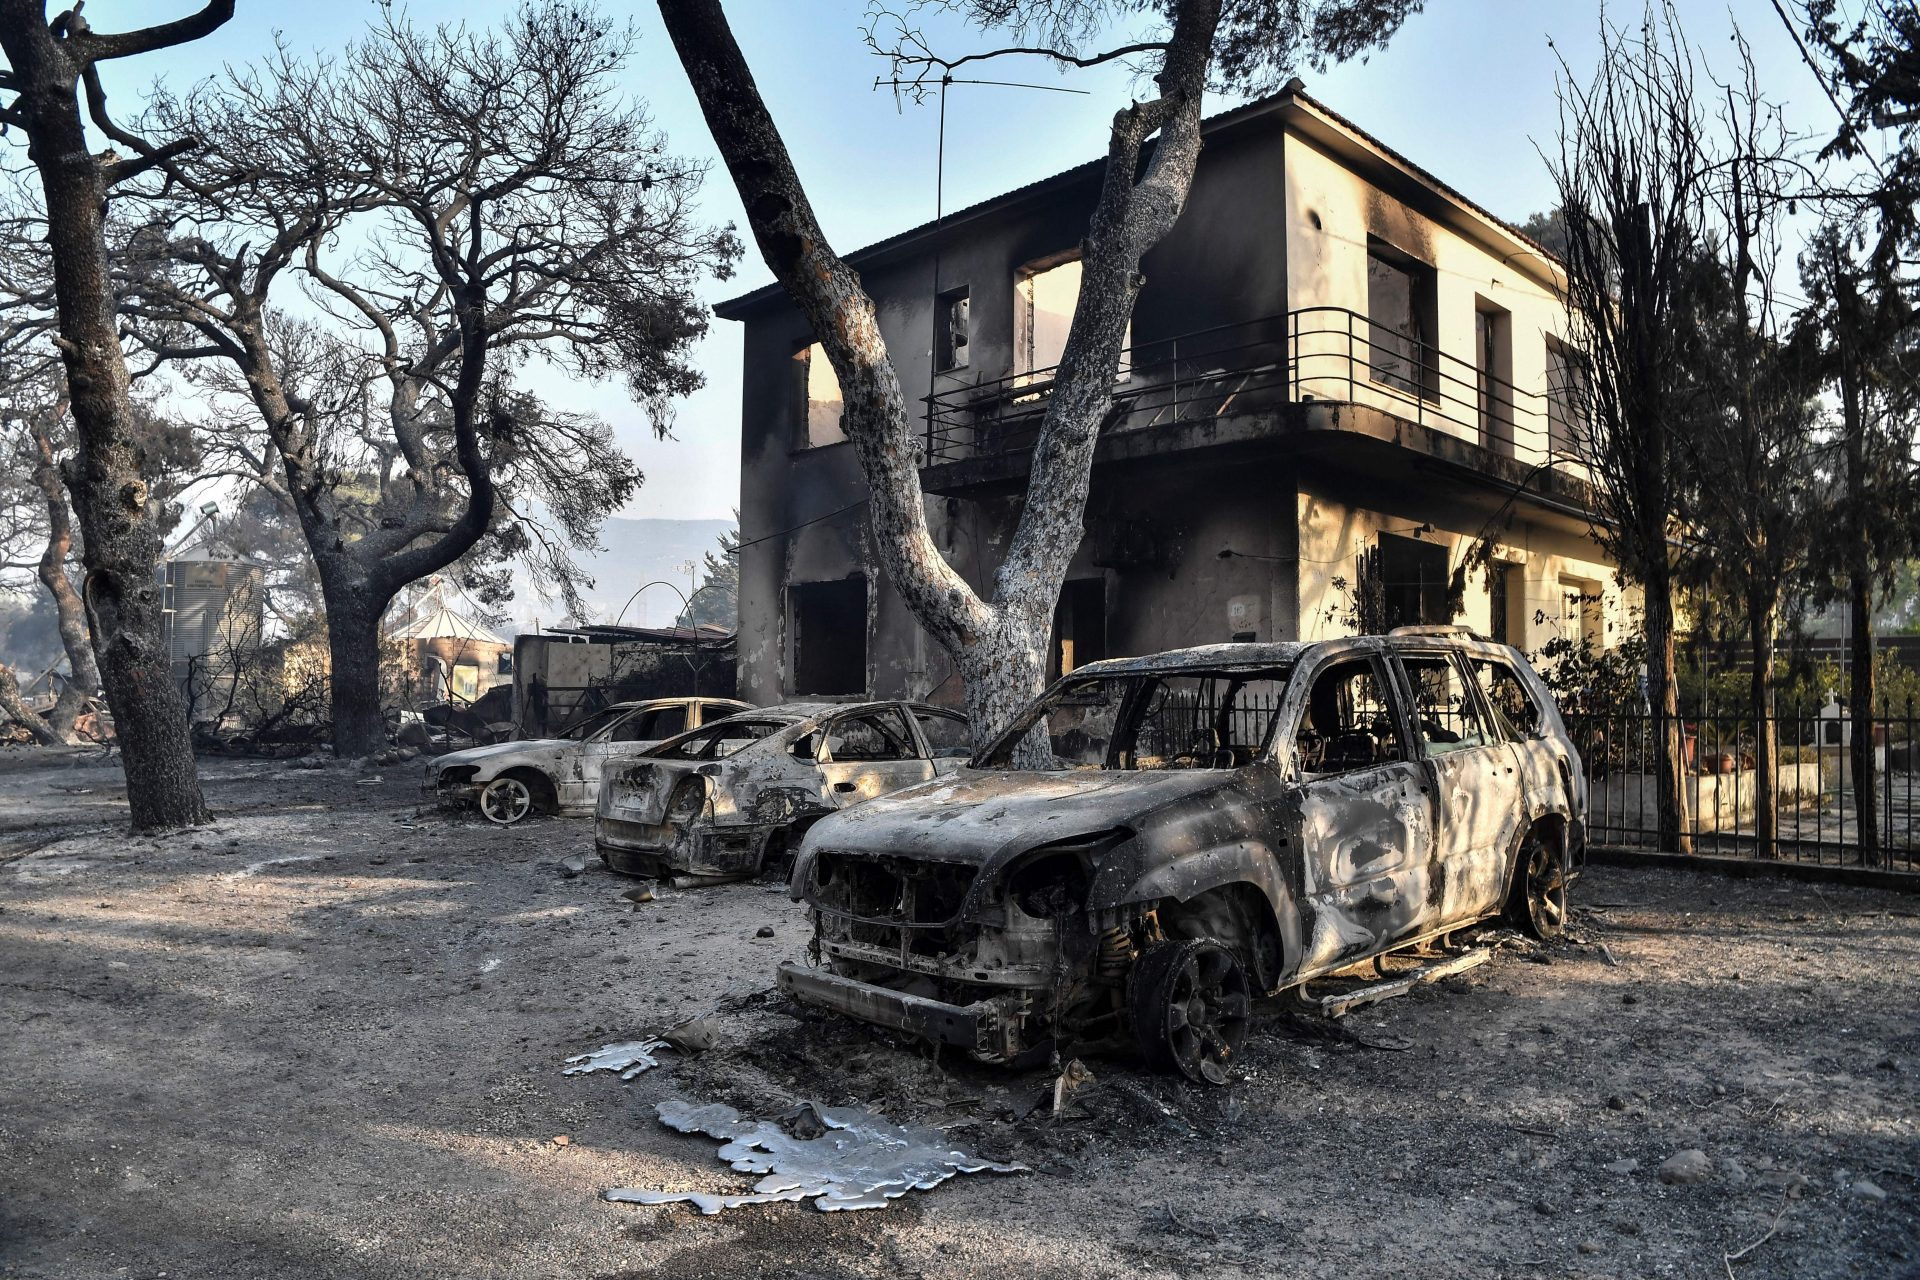 Greece is burning: experts blame it on climate change